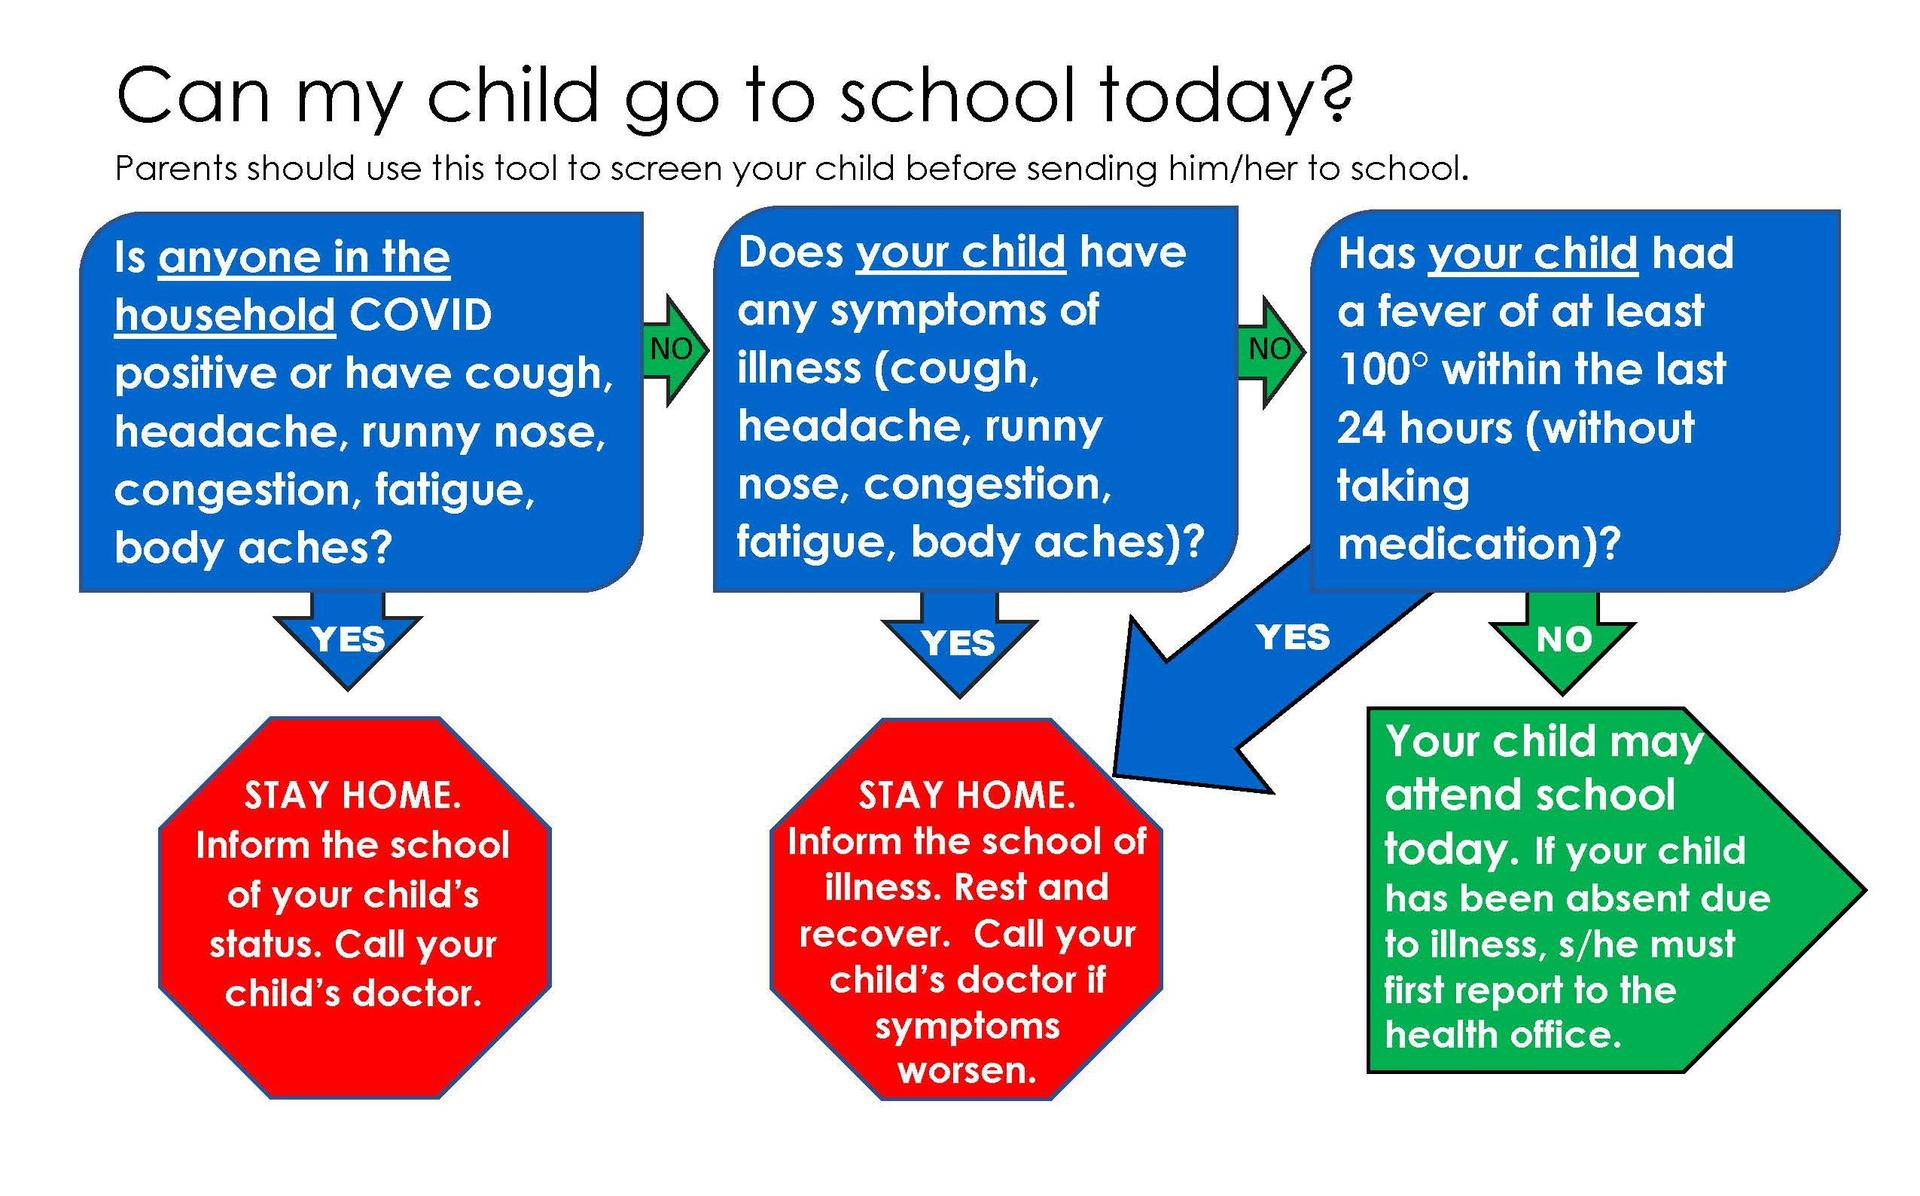 infographic to screen child's health before sending them to school - in English